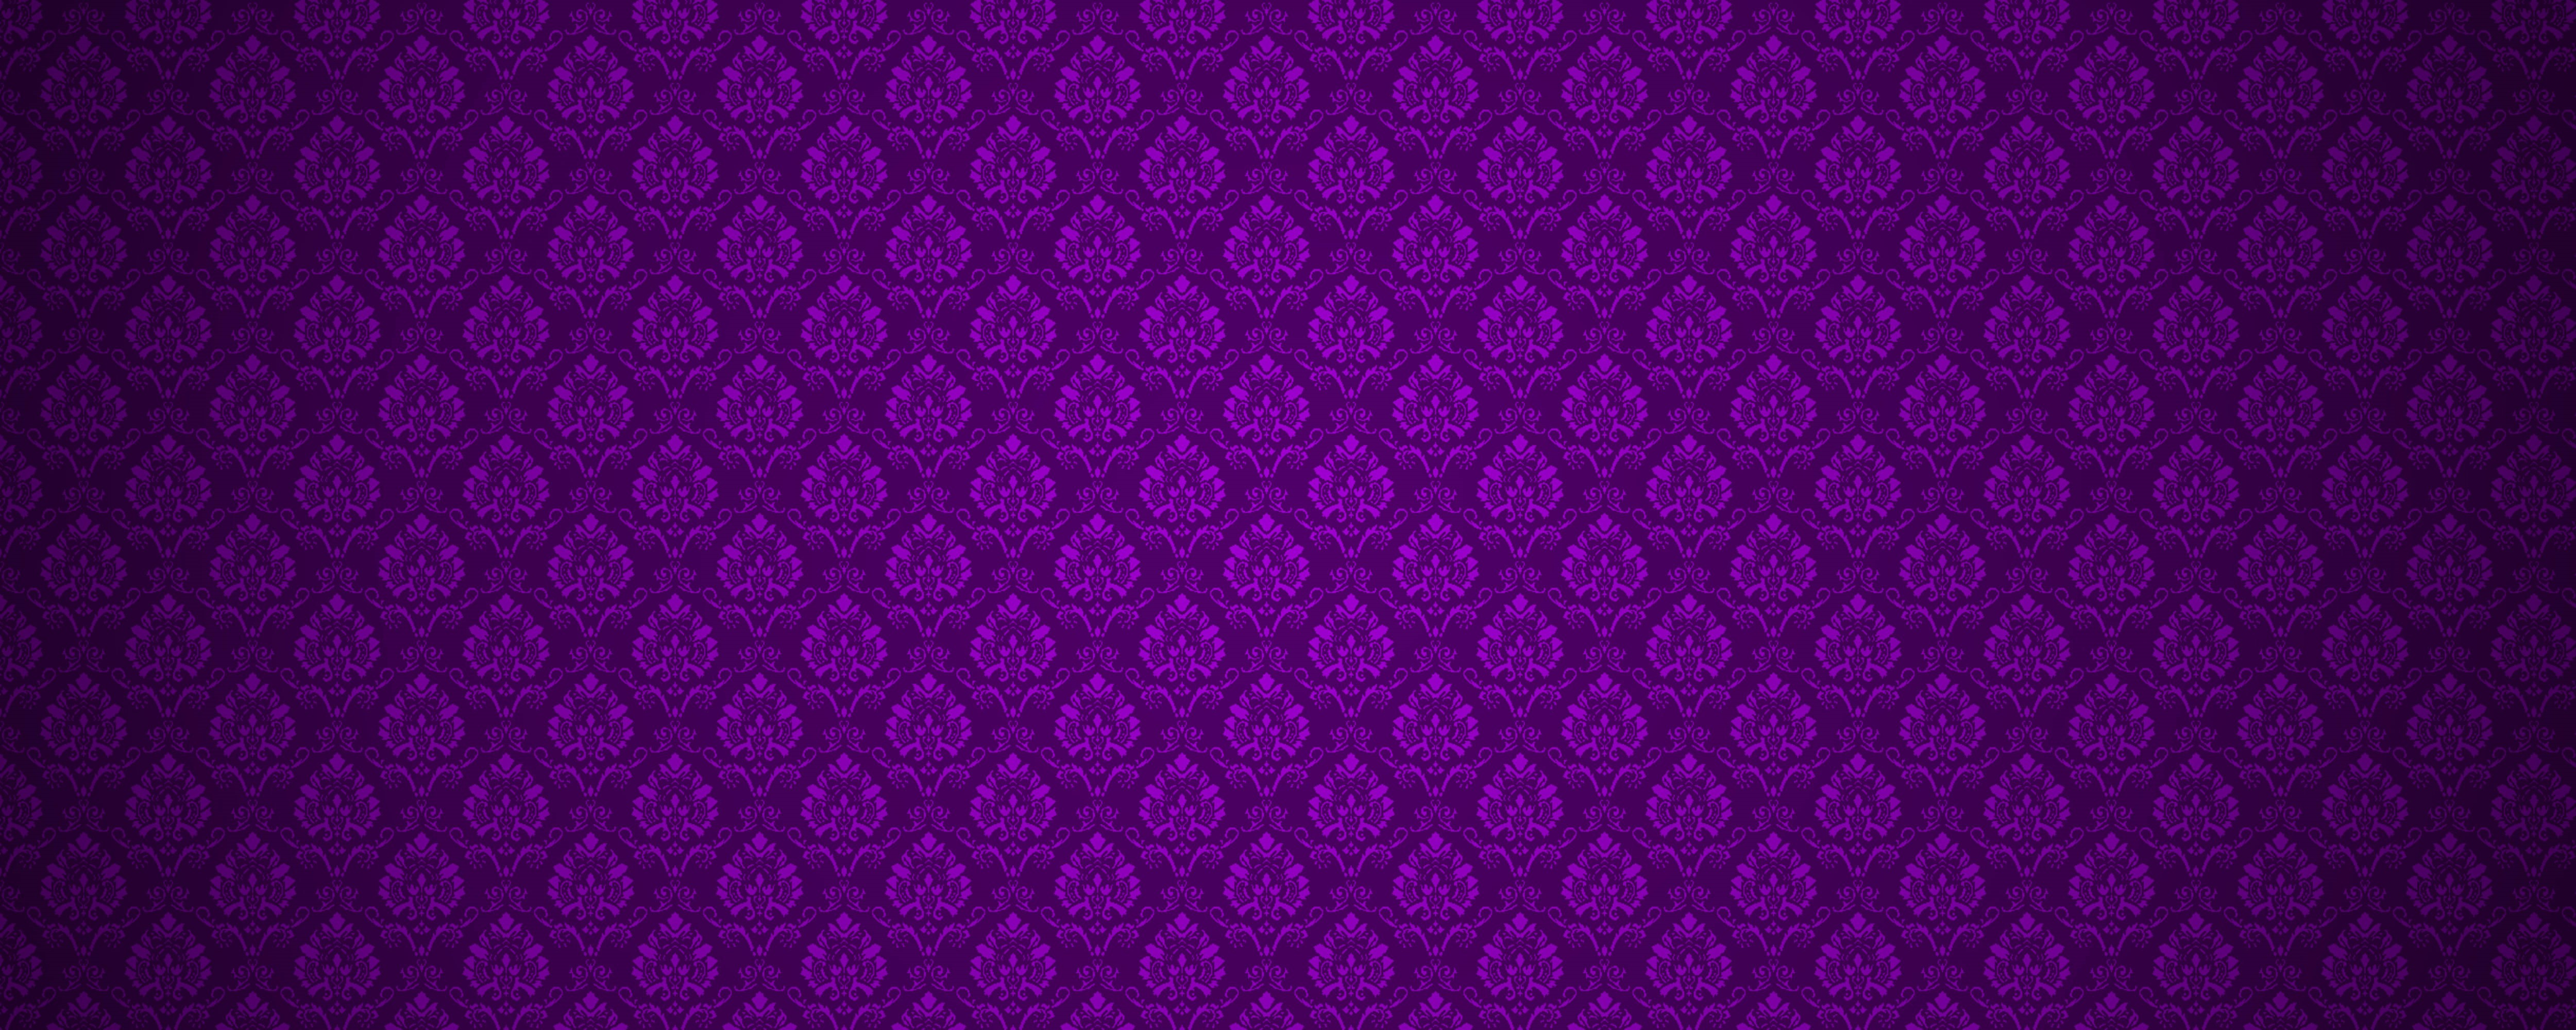 purple and gold wallpaper | wallpaperil com | Free Wallpapers HD